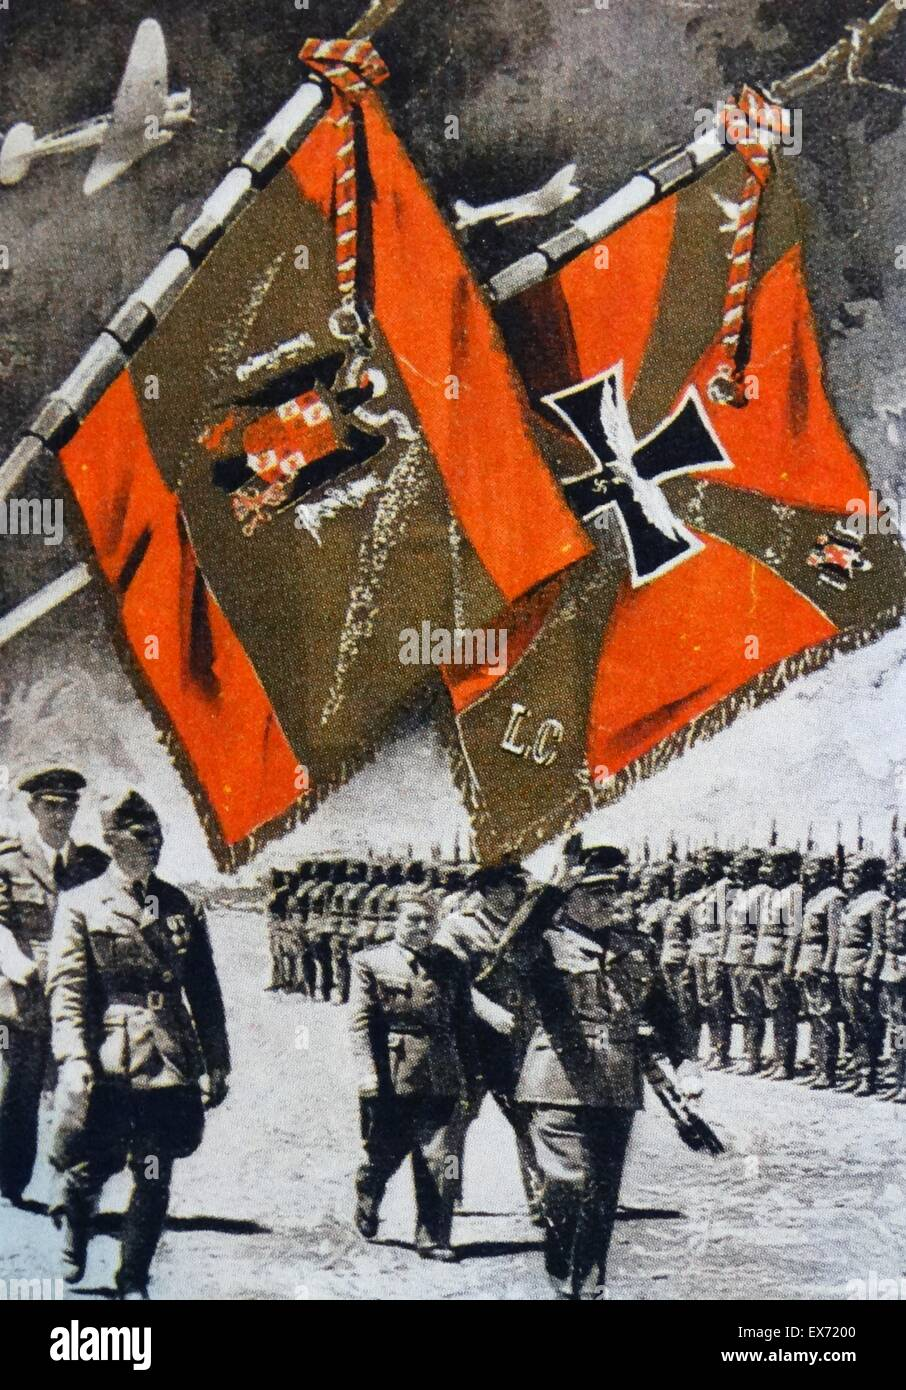 the German Condor Legion parade in Spain. The Condor Legion was sent by the Nazi German Air Force, in 1937 to support - Stock Image